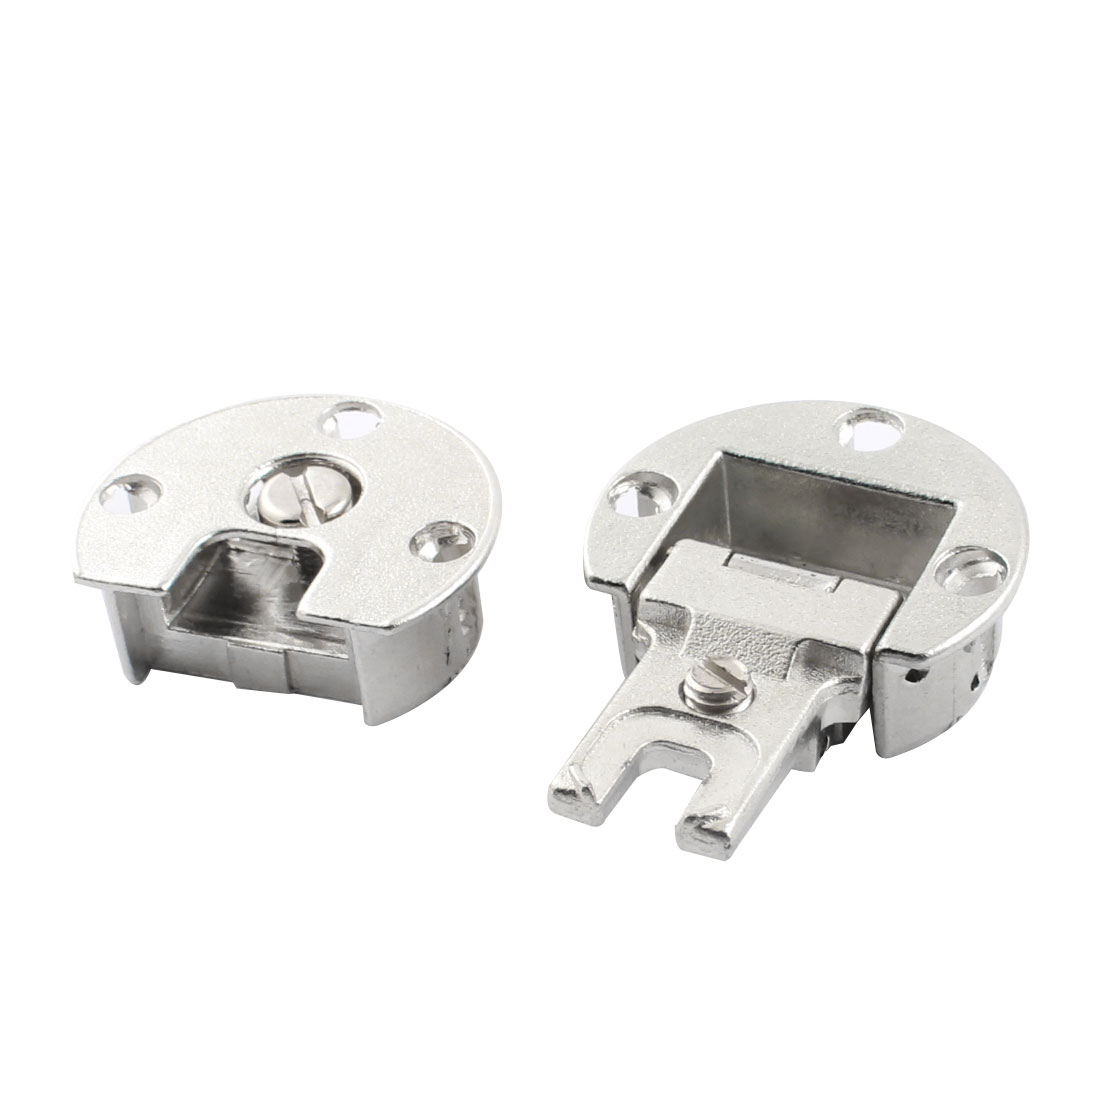 Hardware Tool Round Silver Tone Metal Right Angle Concealed Cabinet Hinge for Furniture Door